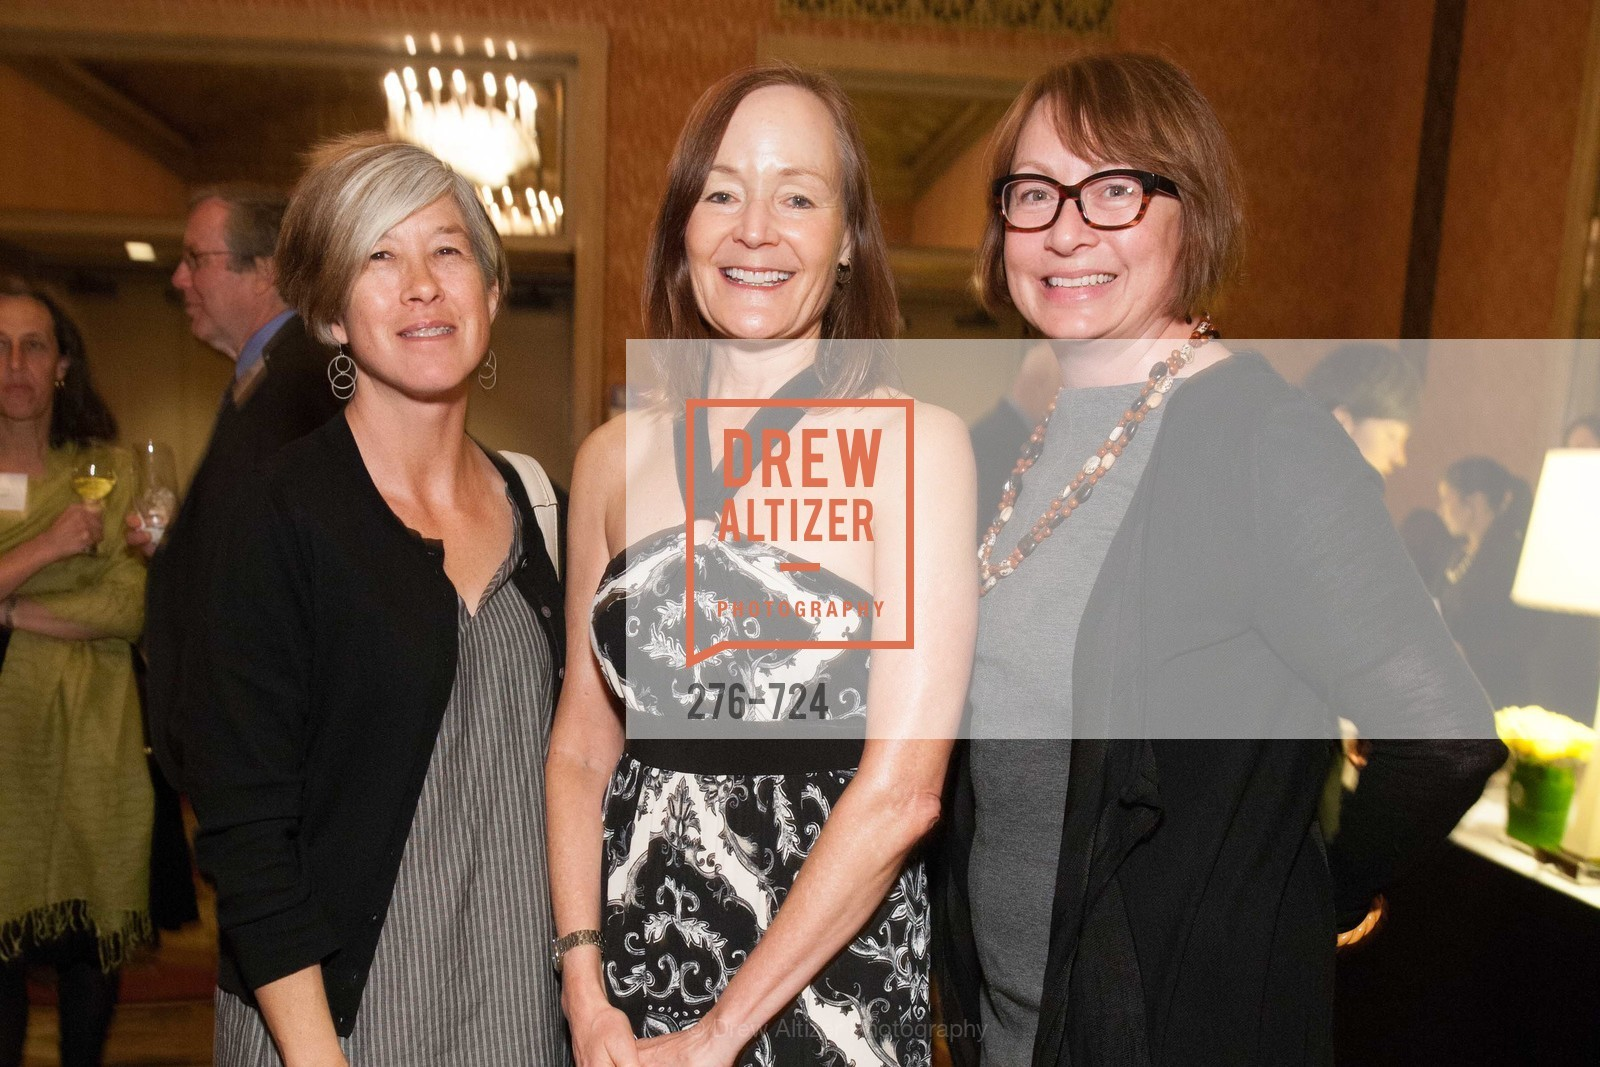 Kim Piechota, Noreen Biero, Liz Pocock, TNDC's 34th Annual Birthday Dinner, US, May 13th, 2015,Drew Altizer, Drew Altizer Photography, full-service agency, private events, San Francisco photographer, photographer california